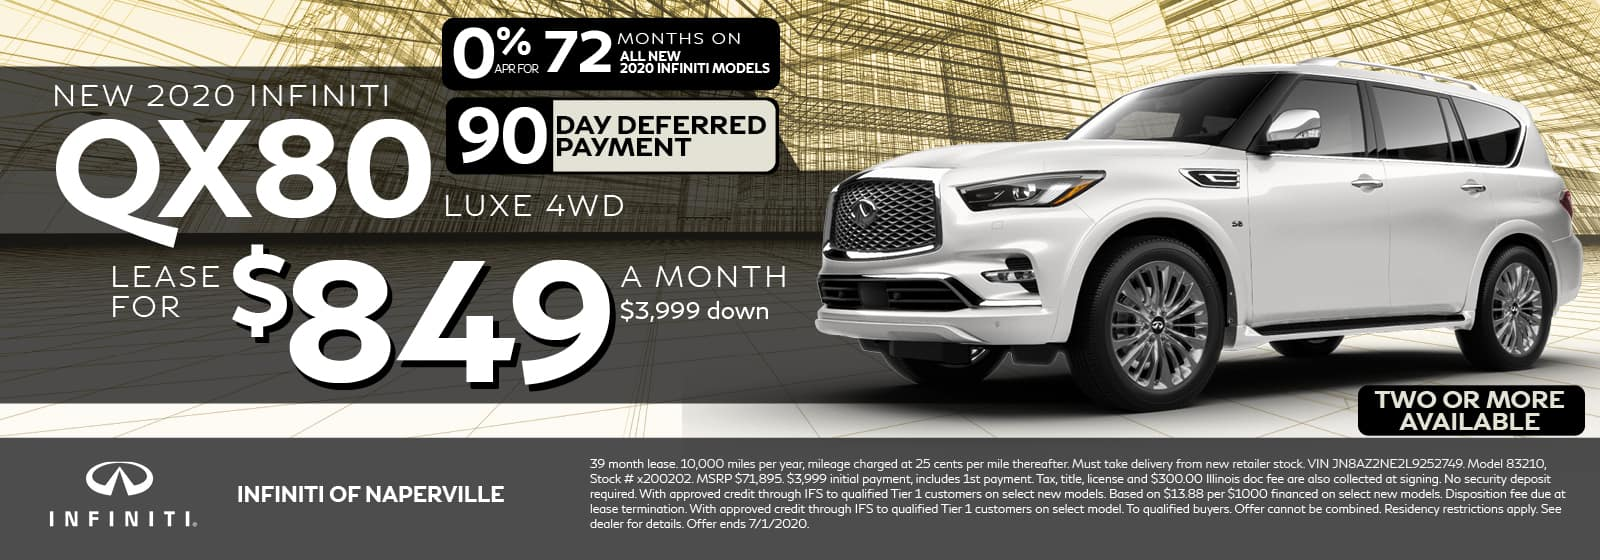 QX80 Lease Offer